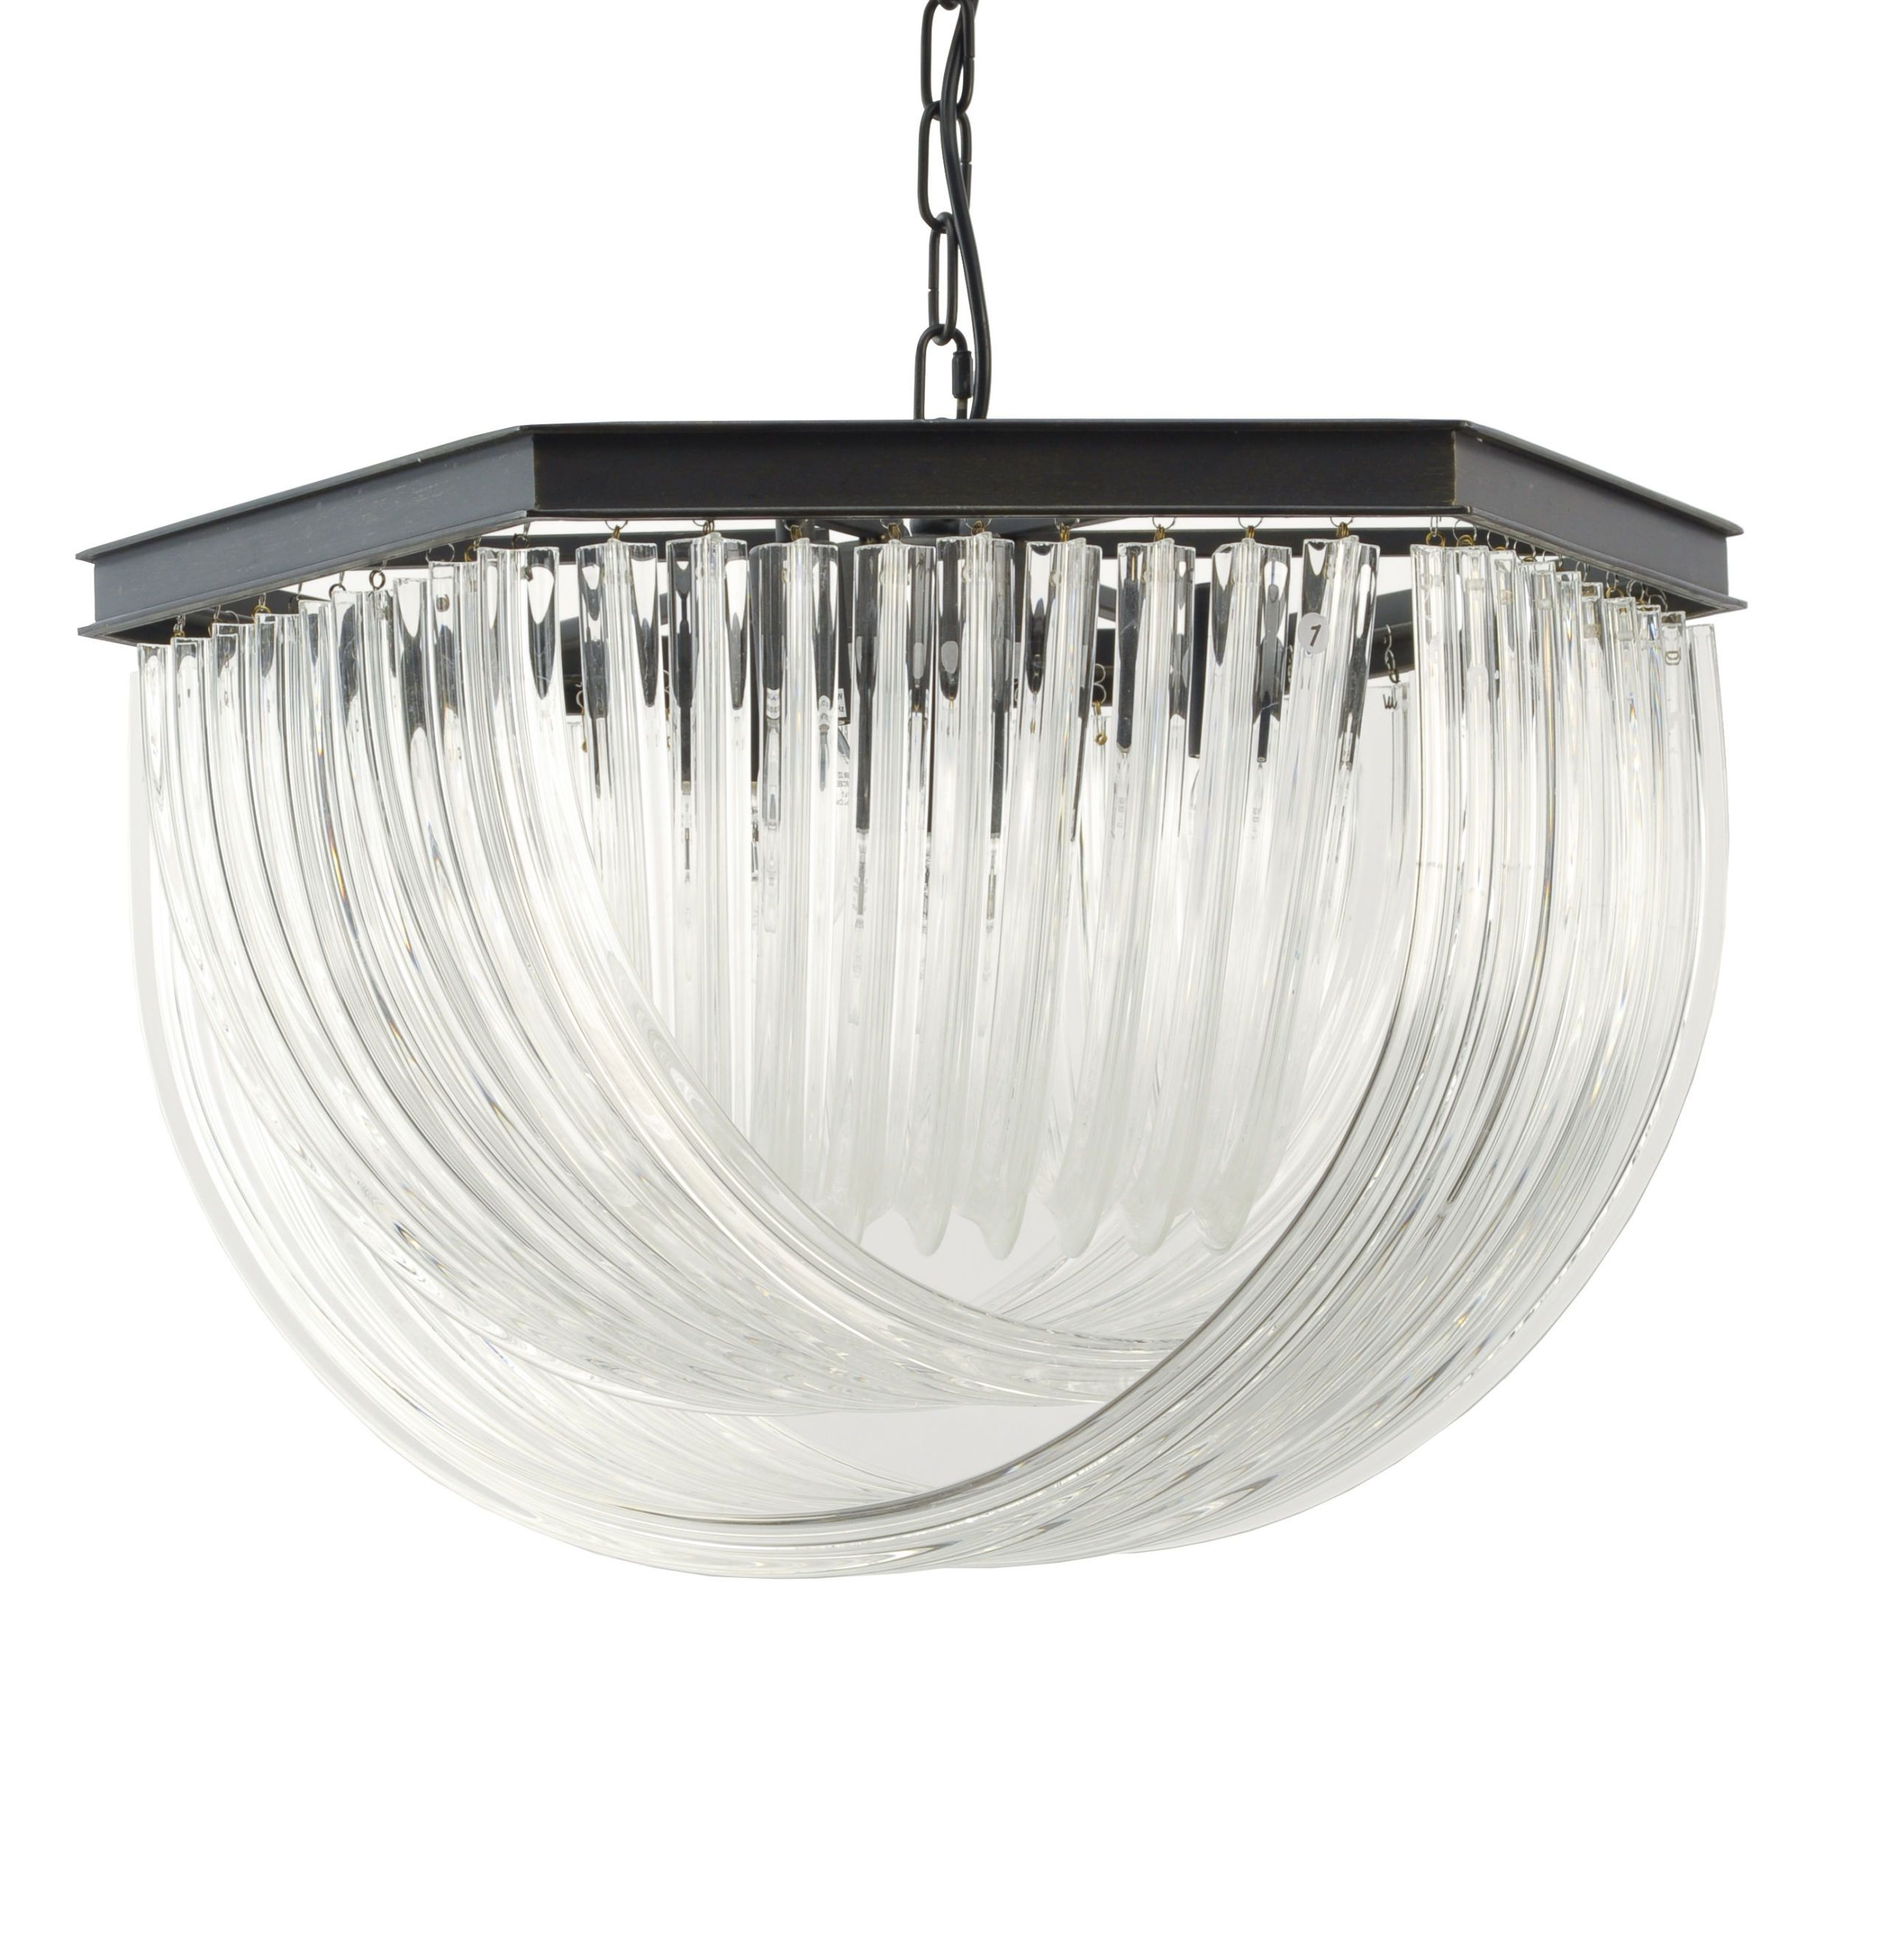 Lighting   Contemporary Chandeliers, Floor and Table Lights